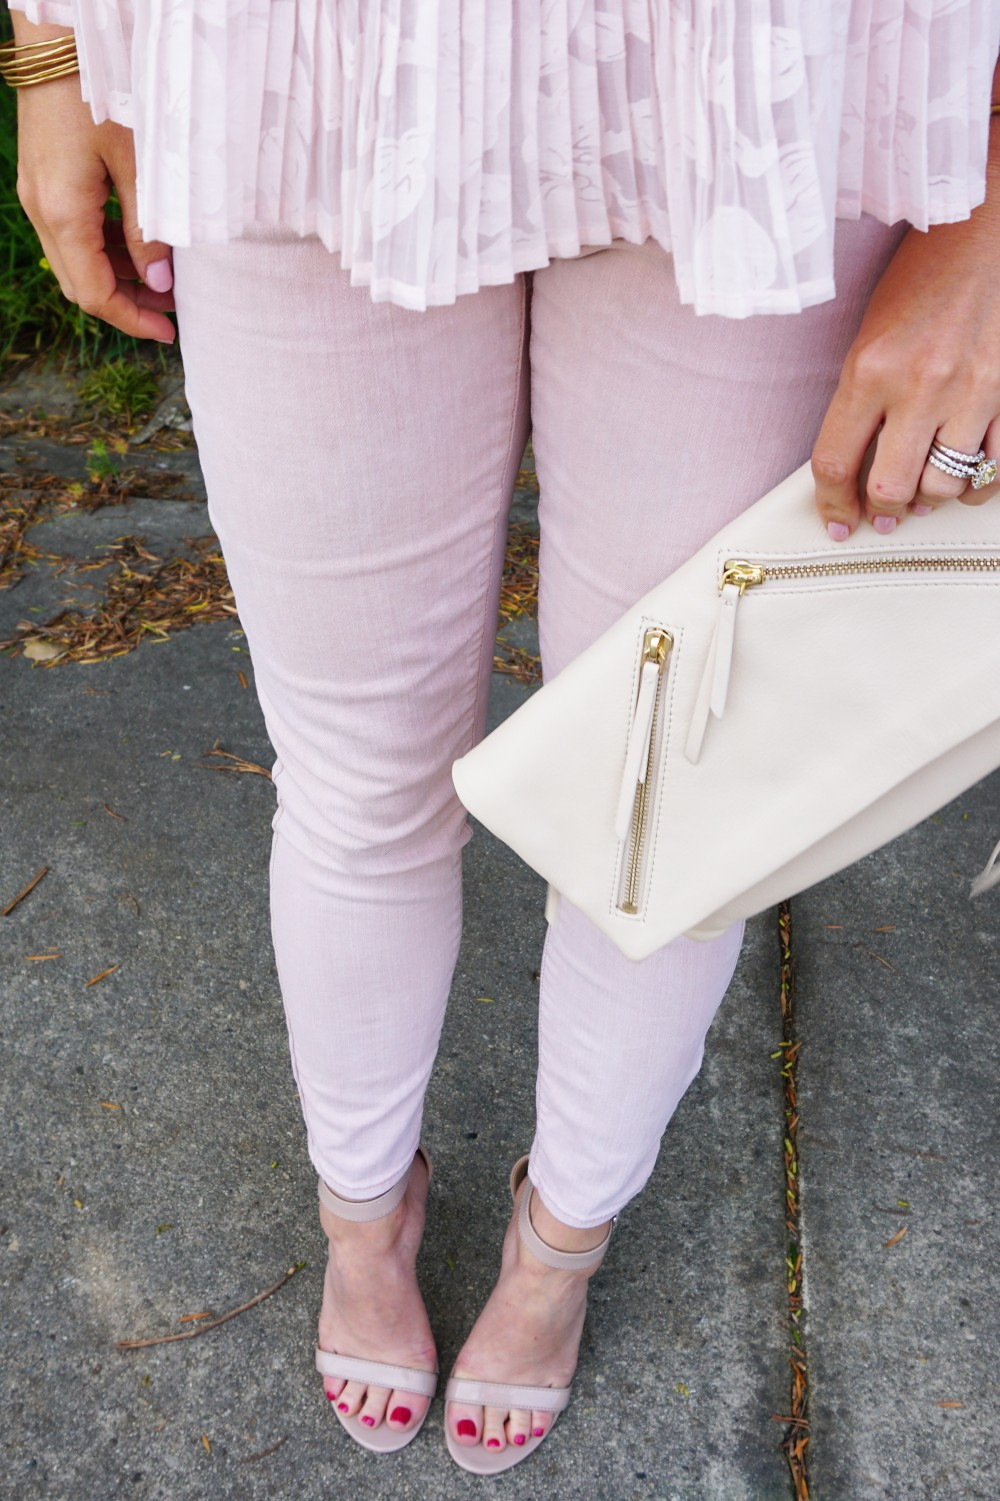 Blush Pink Easter Outfit-Easter Outfit Idea-Target Style-Who What Wear for Target-Outfit Inspiration-Have Need Want 12